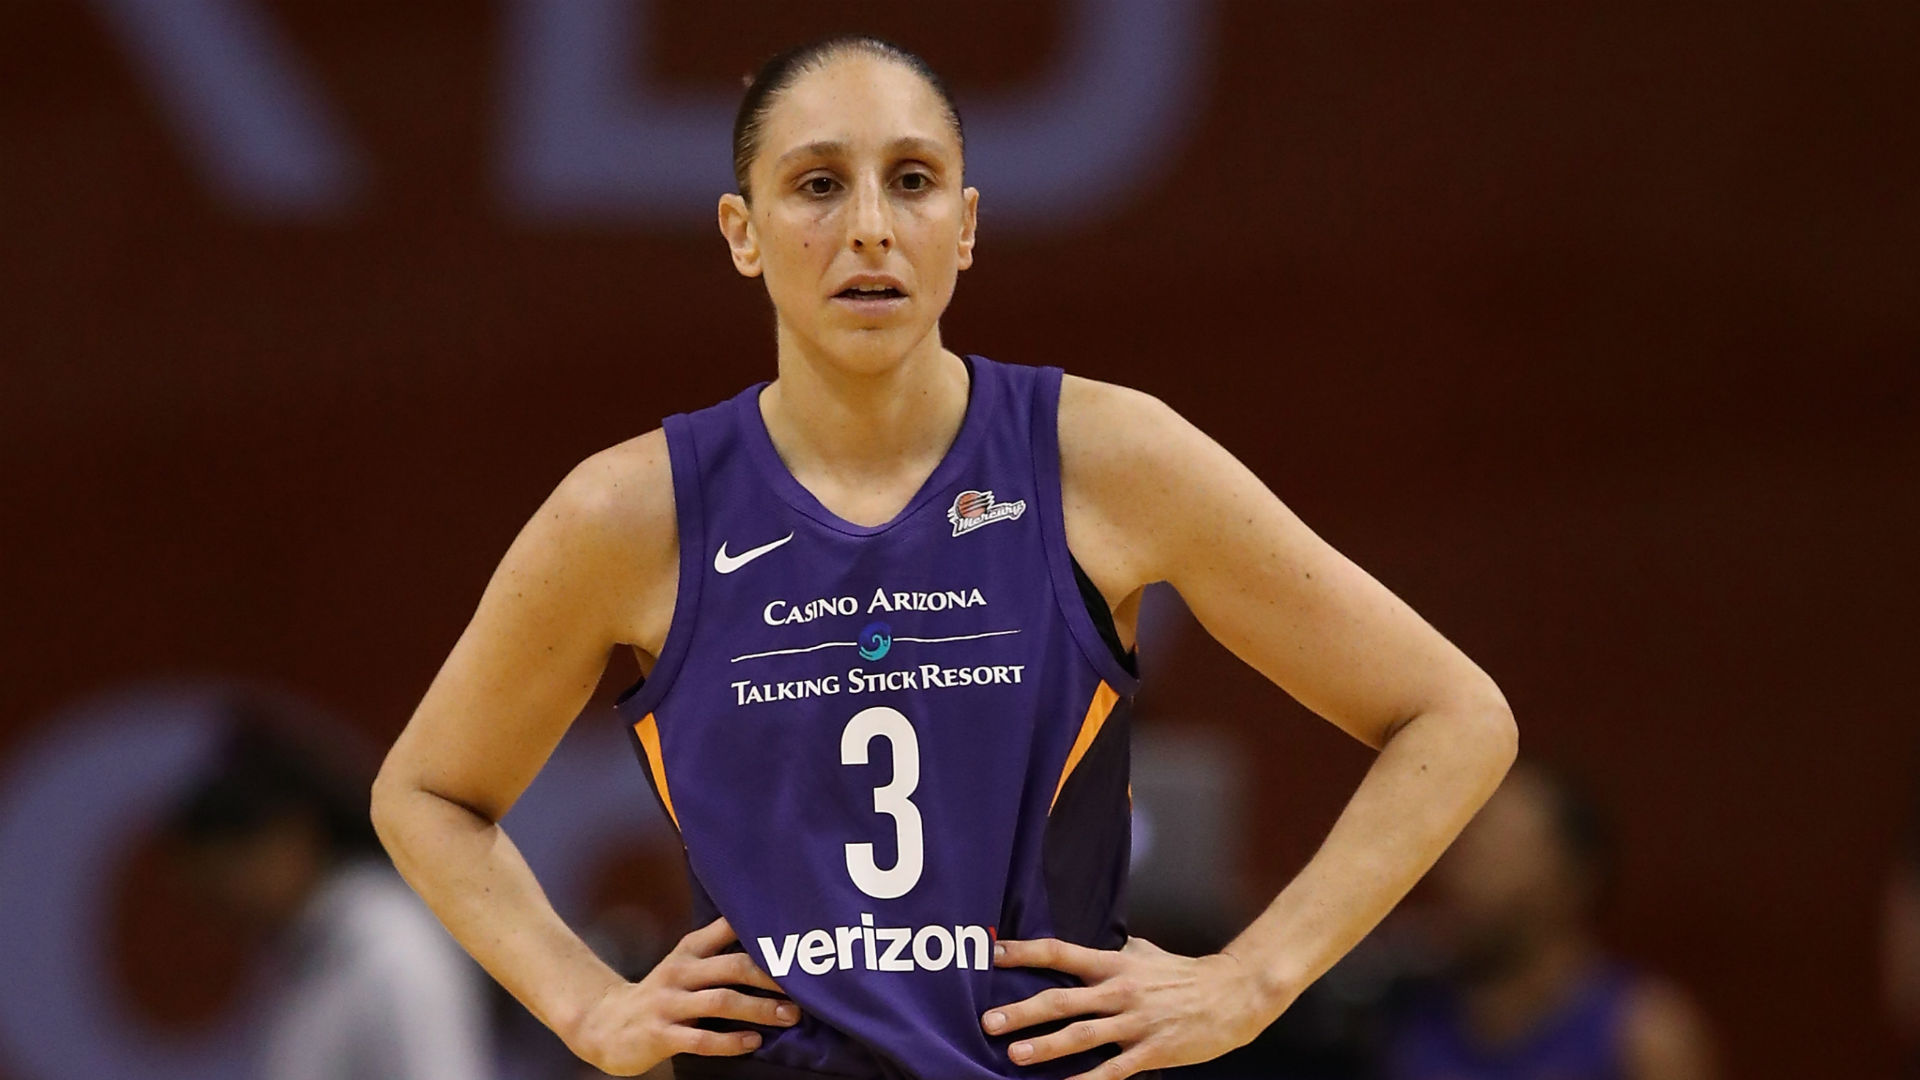 Diana Taurasi claps back in her 13th consecutive single-elimination win